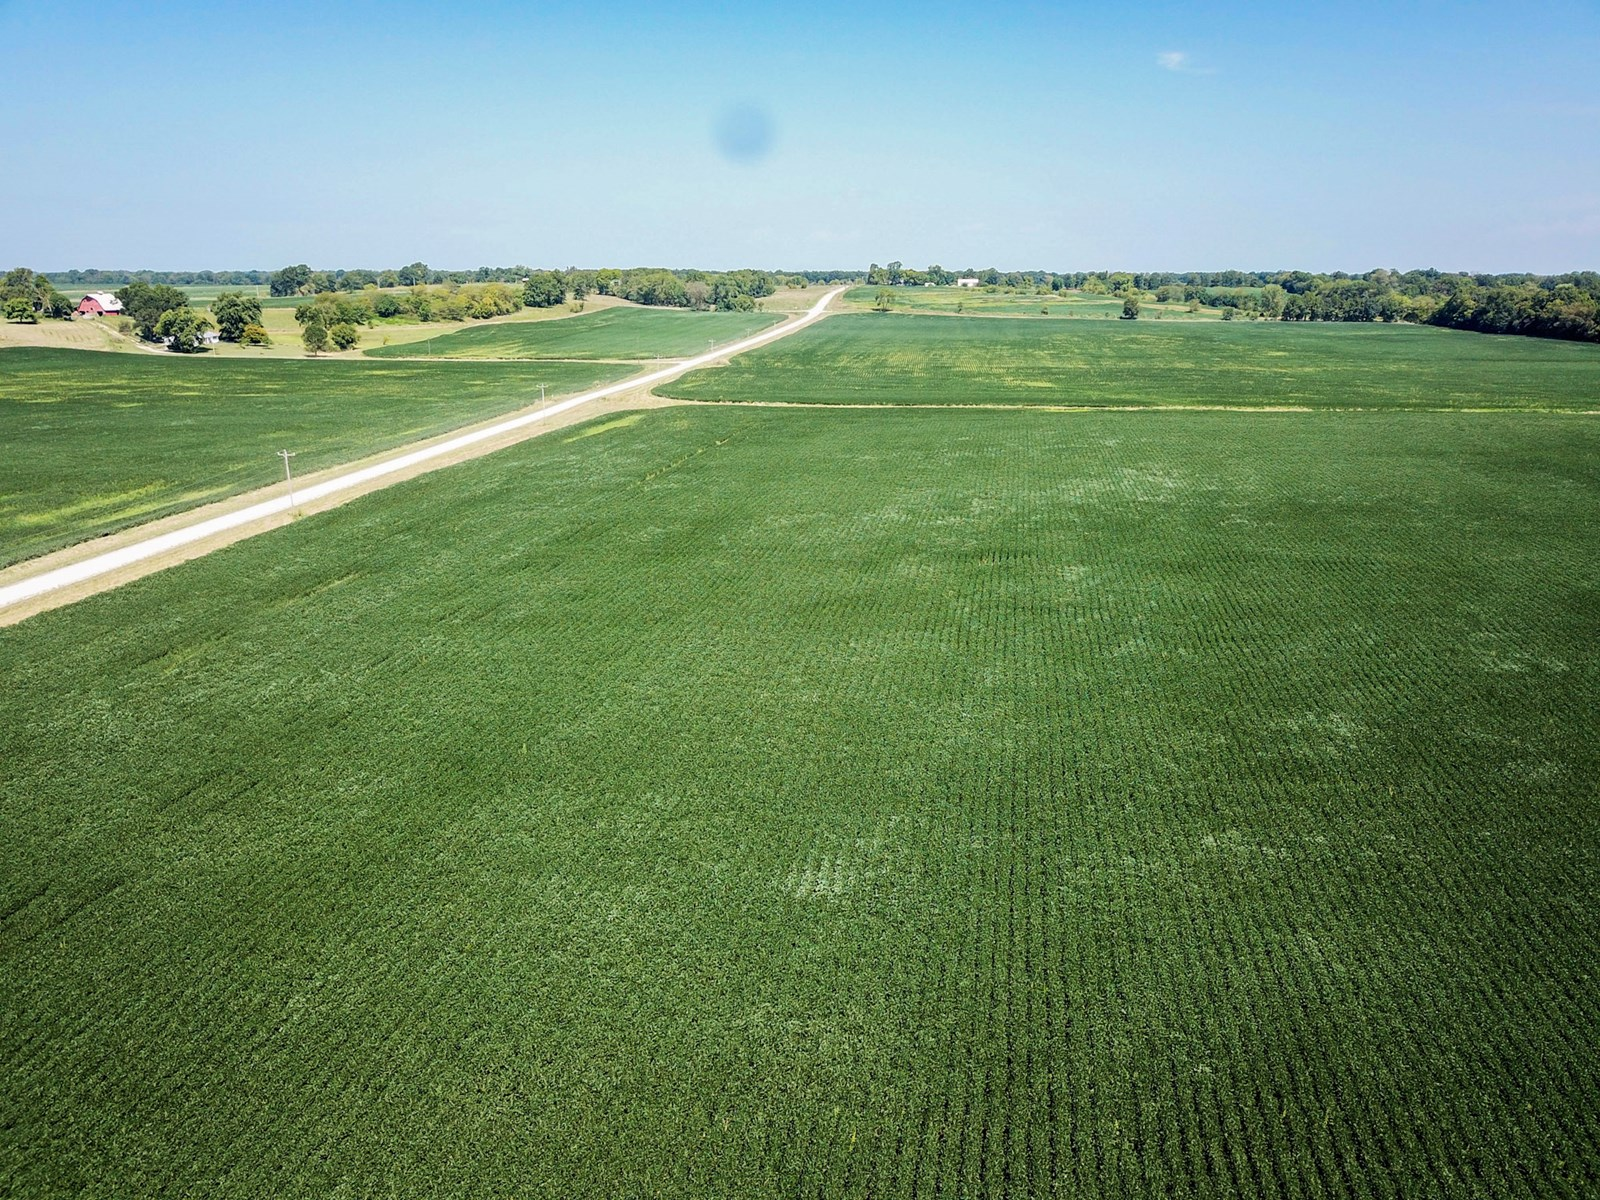 Tract 4 - 843 ac +/- for auction in Audrain County, Missouri